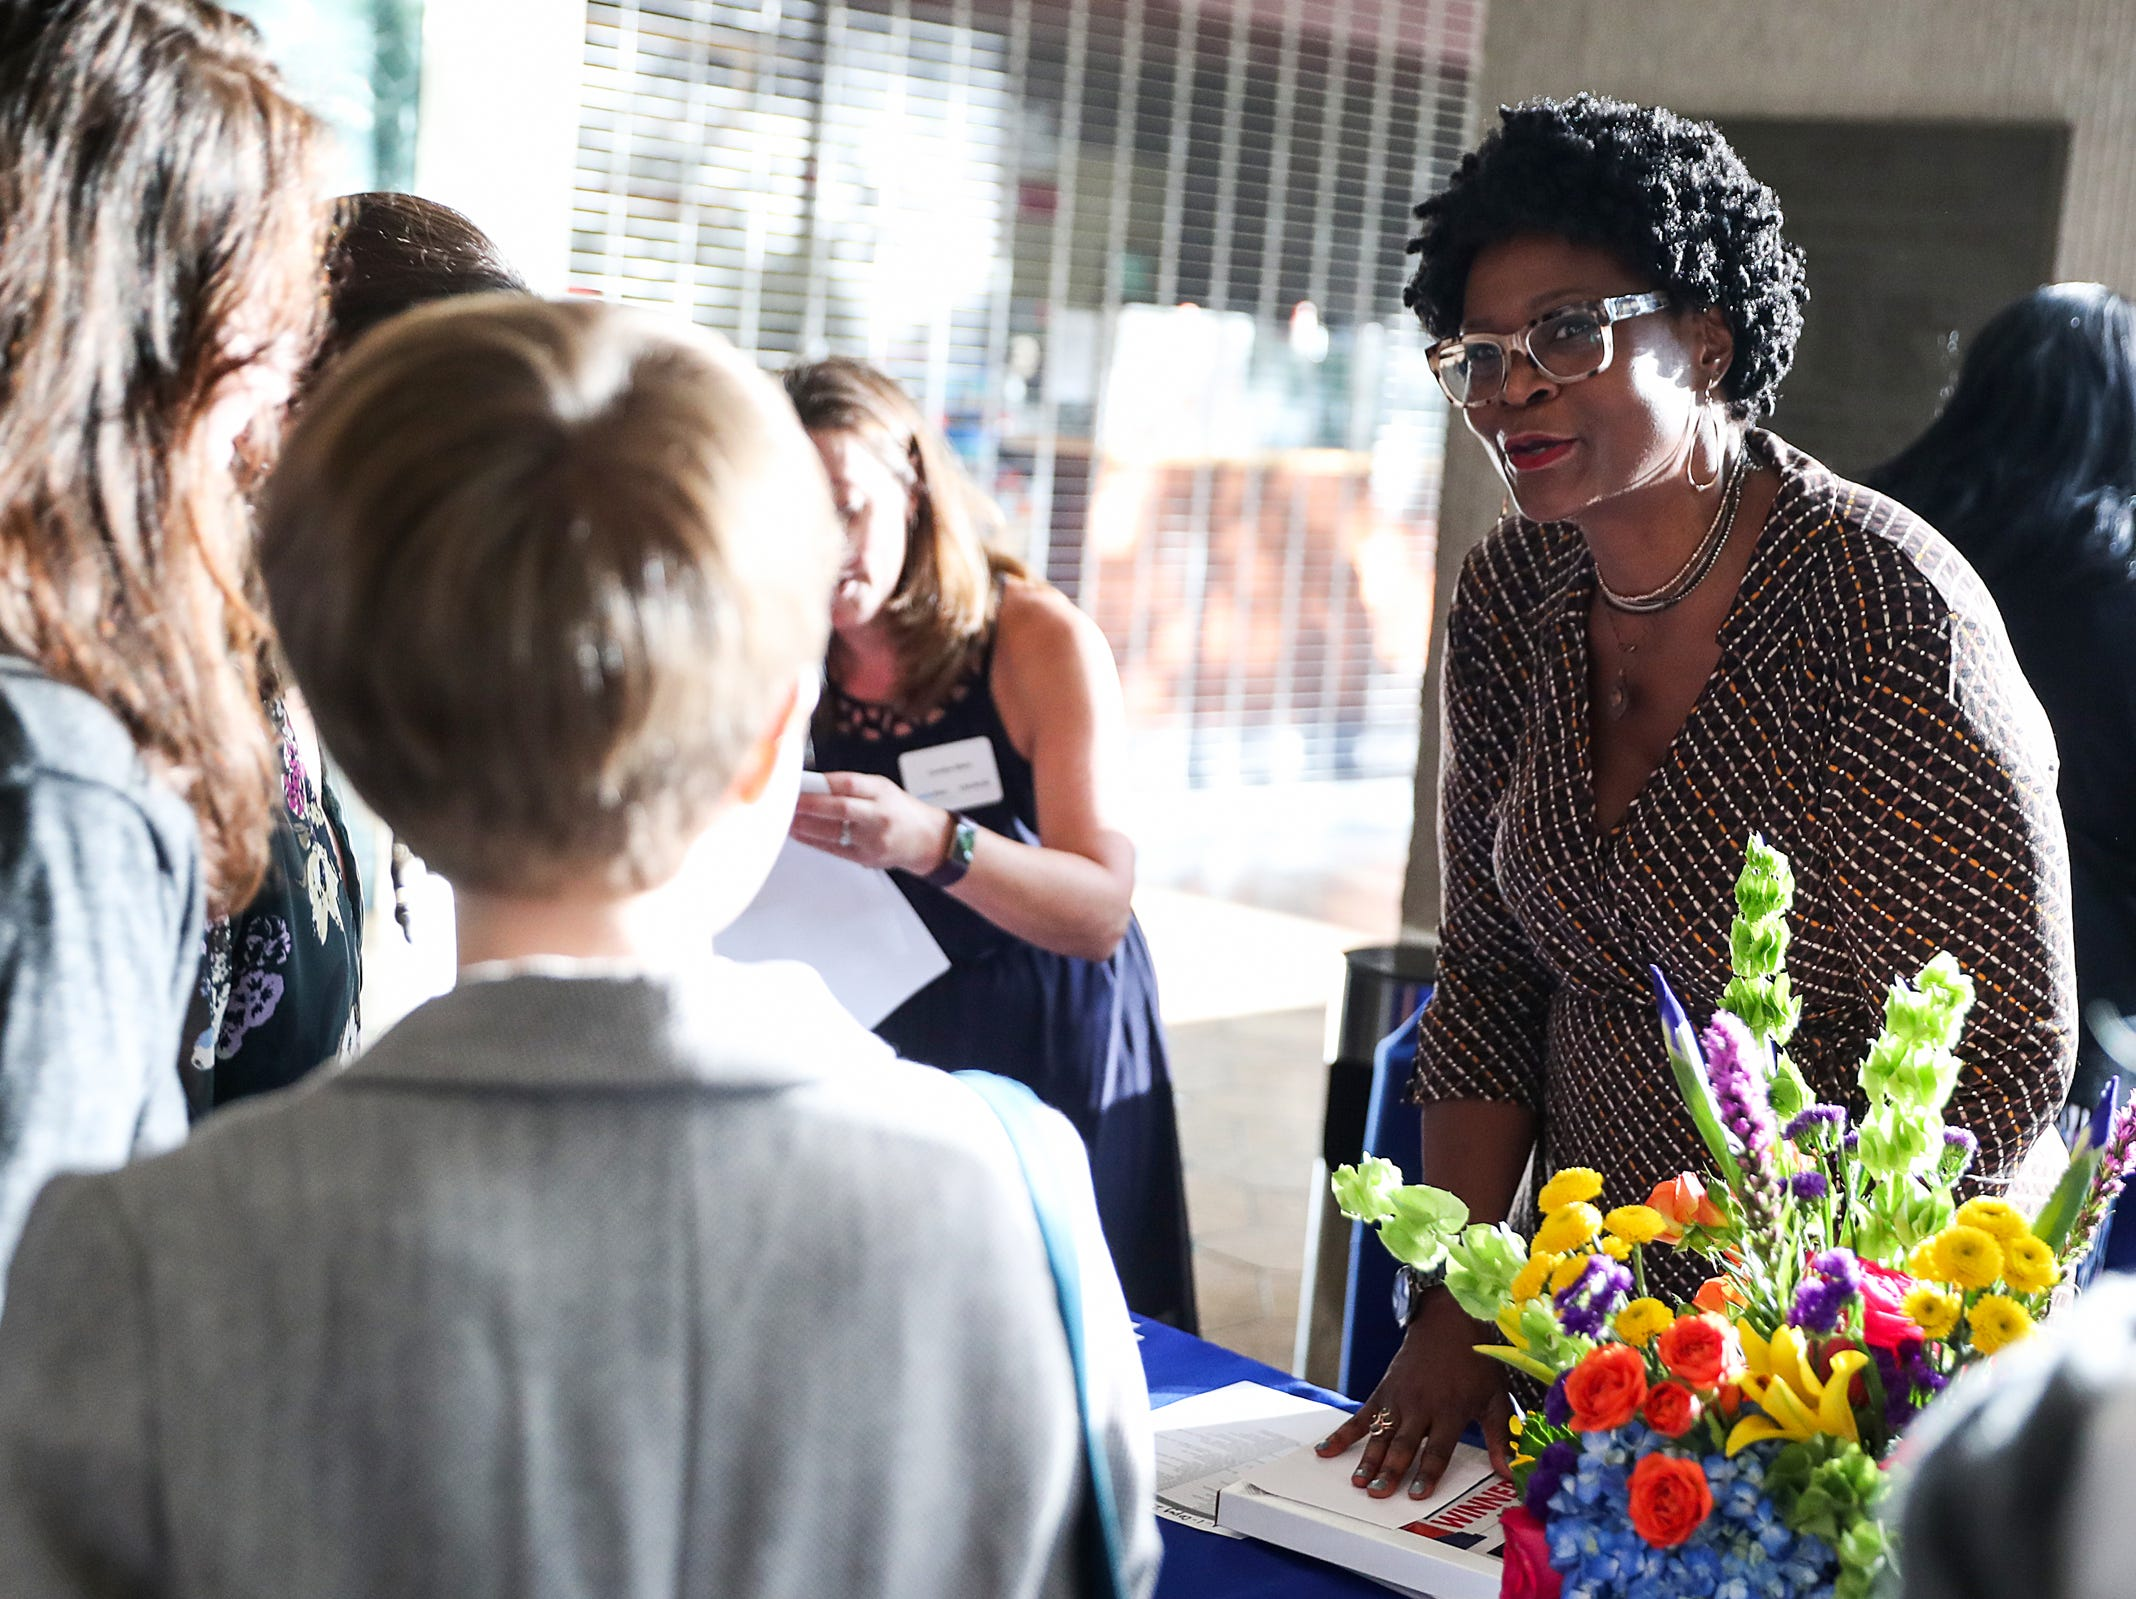 IndyStar Director of Opinion & Community Engagement Suzette Hackney checks in guests during the inaugural Best Things Indy 2018 award ceremony, held by IndyStar at One America Tower in Indianapolis, Thursday, Sept. 27, 2018.